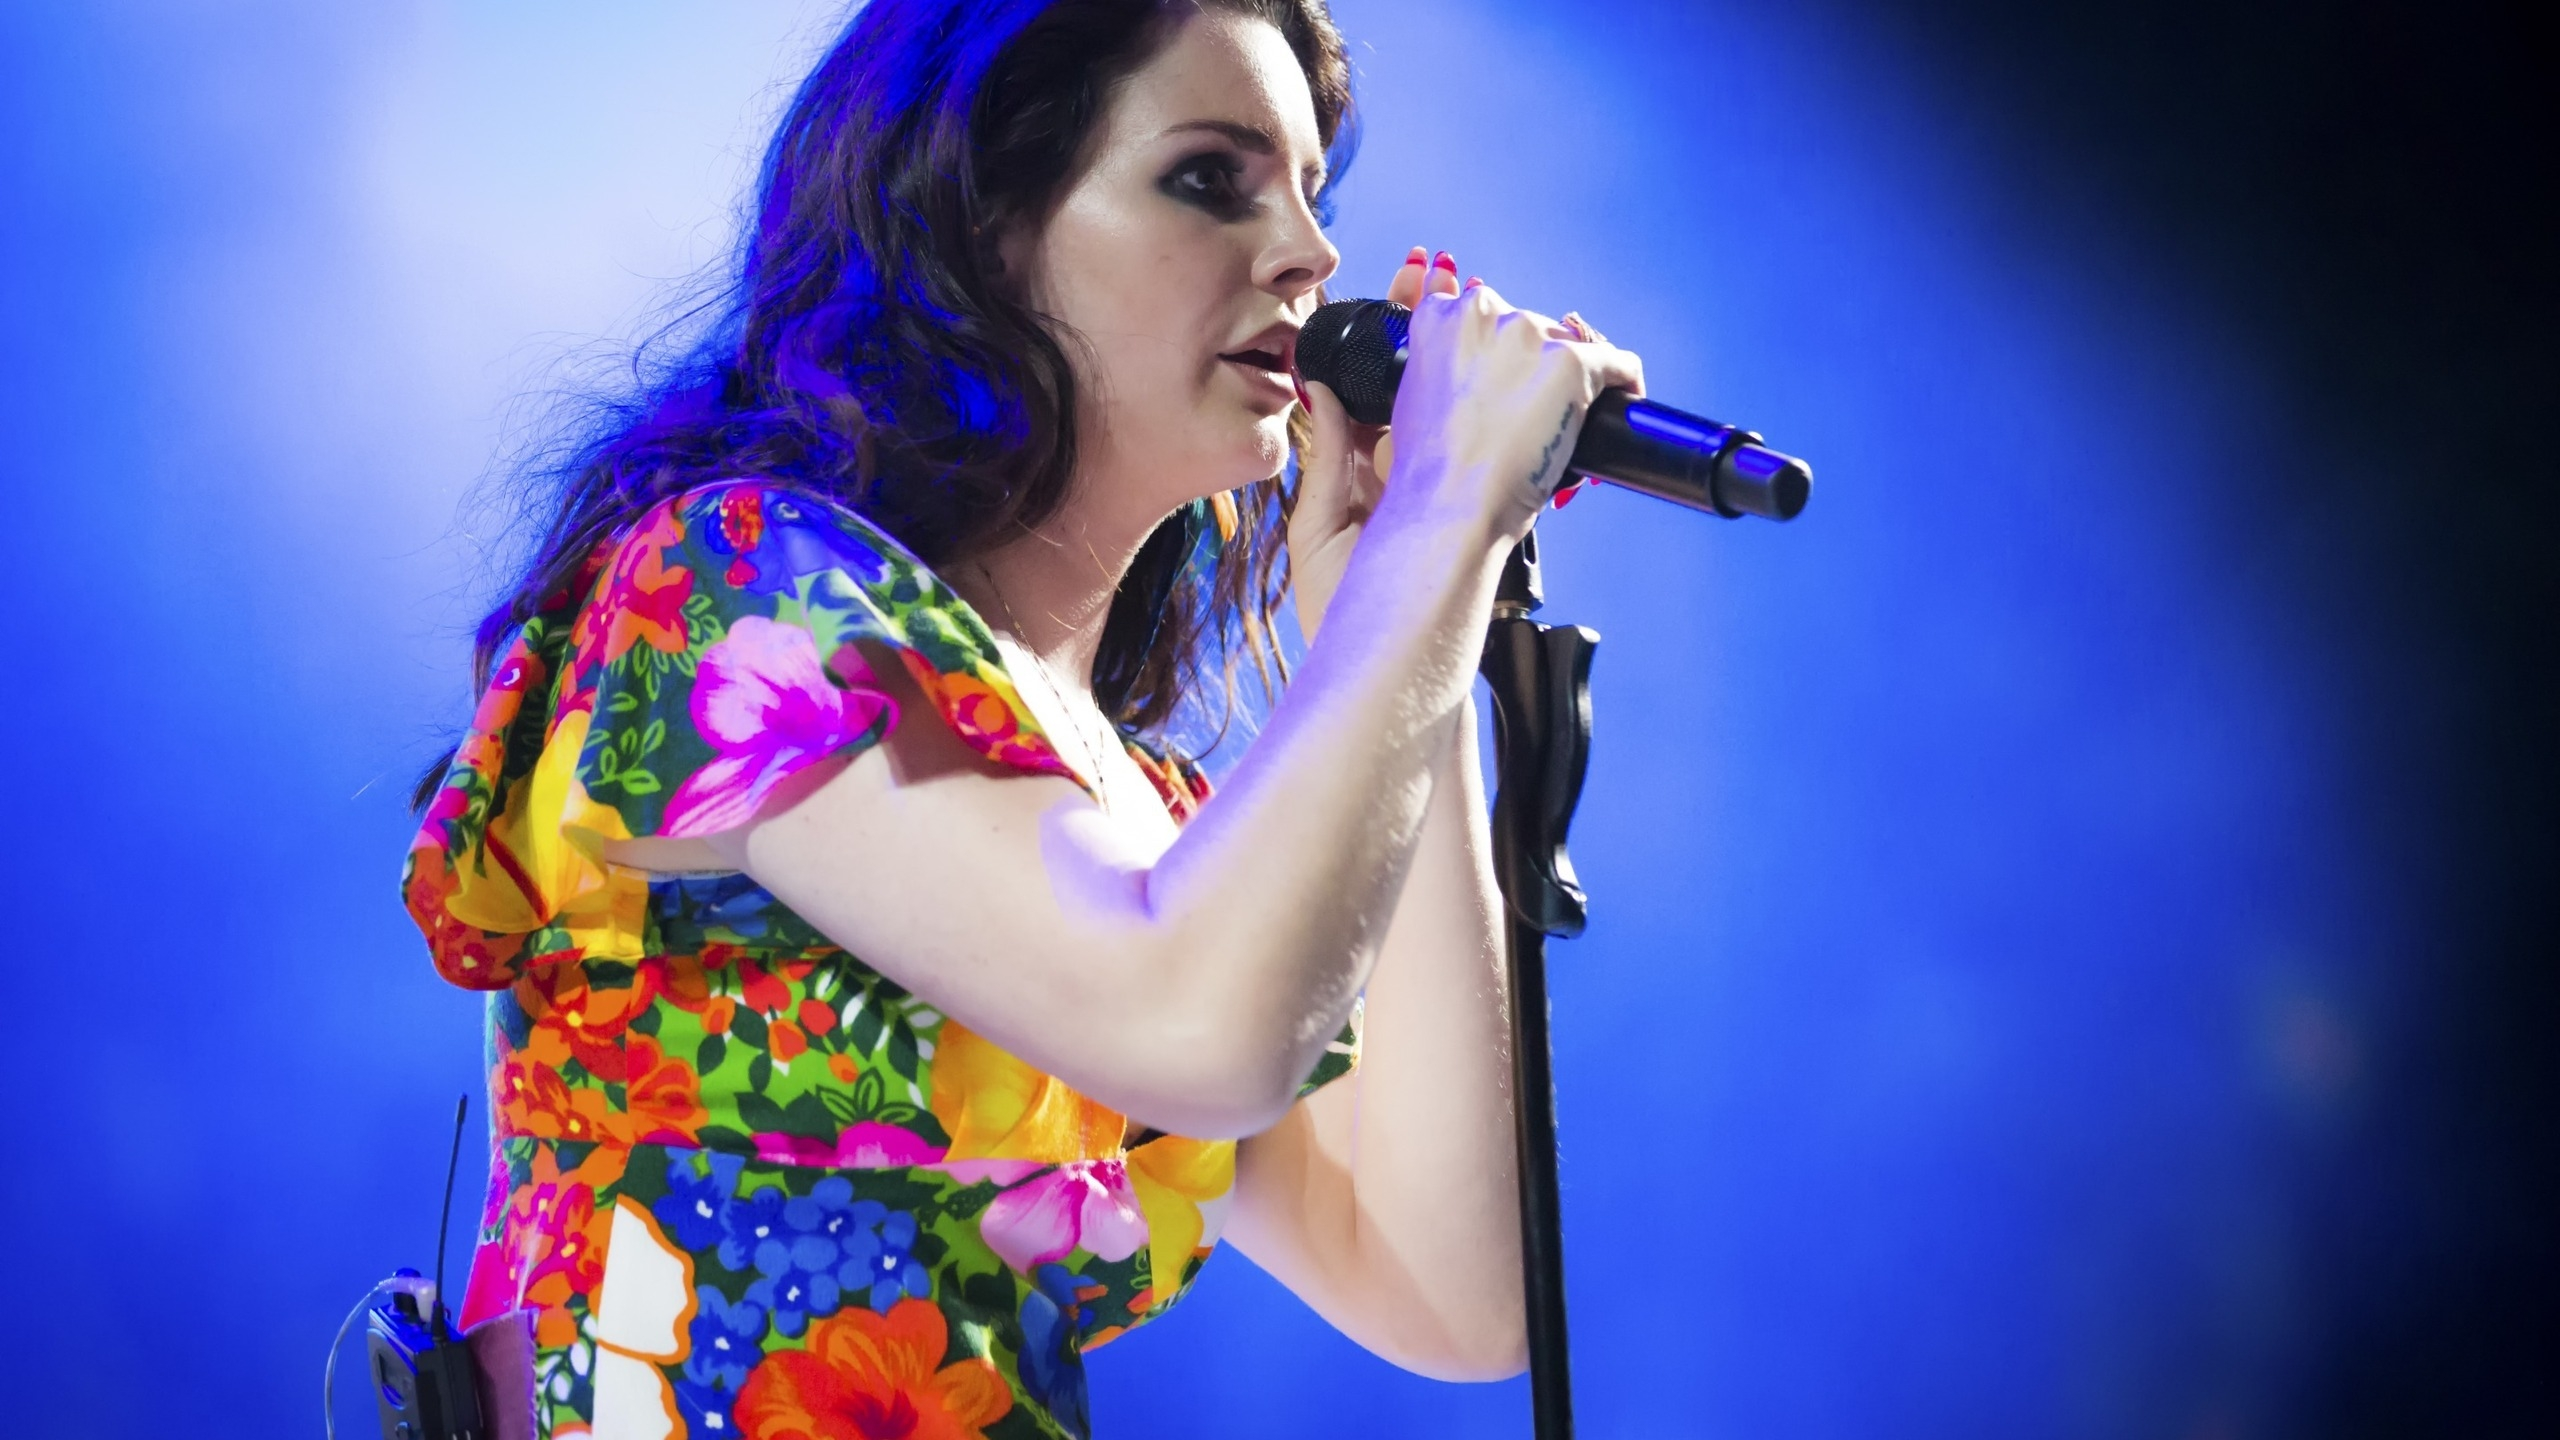 Lana Del Rey Performing Coachella Wallpaper Hd Wallpapers